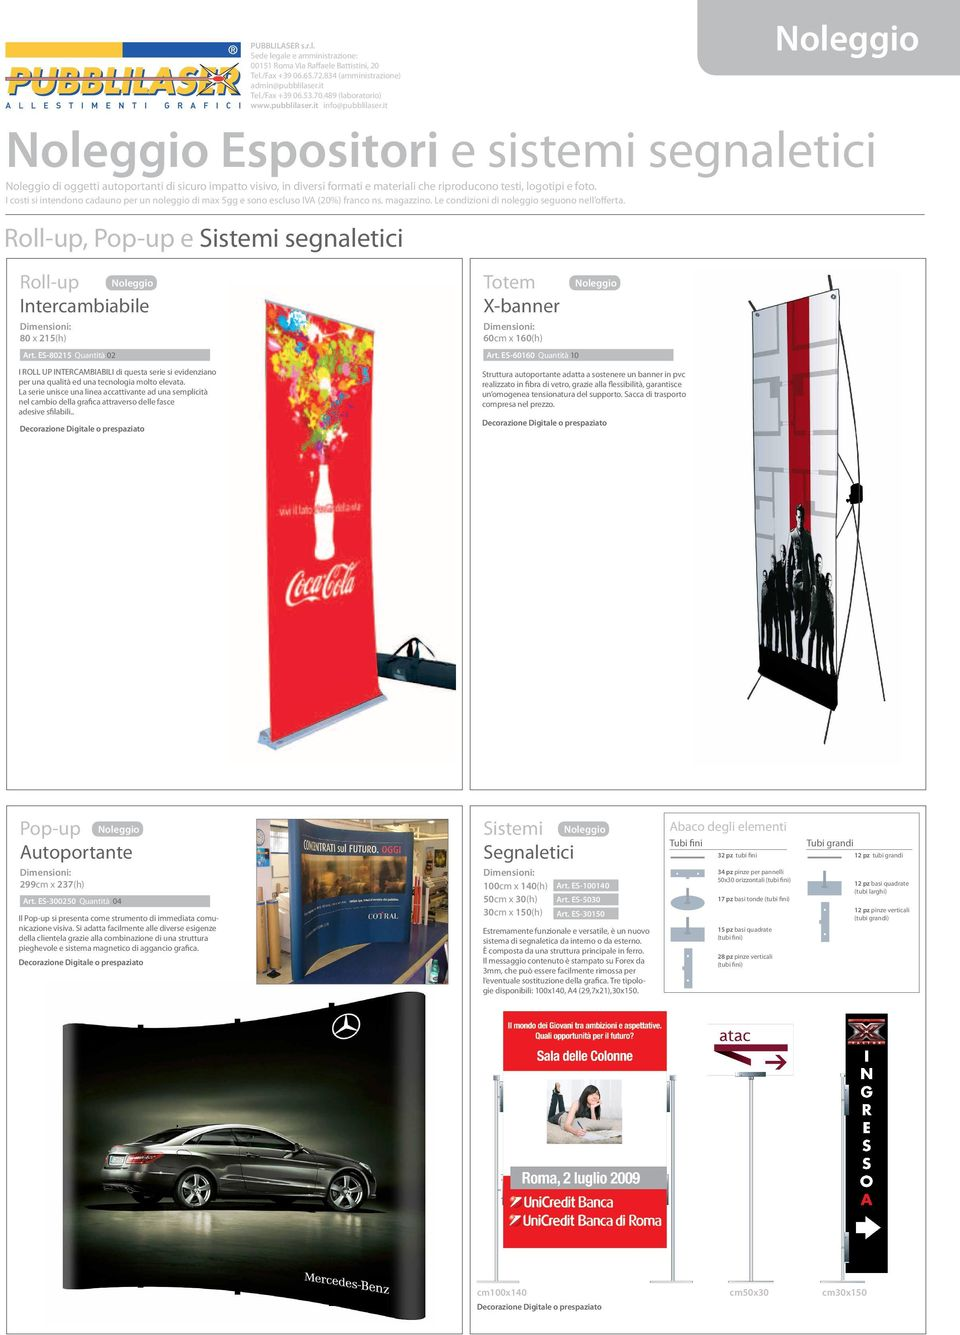 Roll-up, Pop-up e Sistemi segnaletici Roll-up Intercambiabile 80 x 215(h) Art.